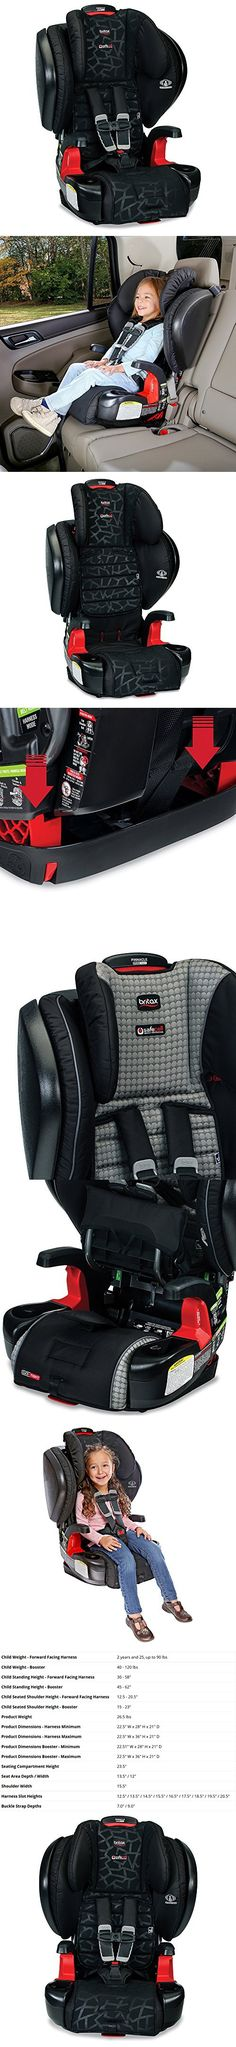 Britax Pinnacle ClickTight G11 Harness 2 Booster Car Seat Mosaic